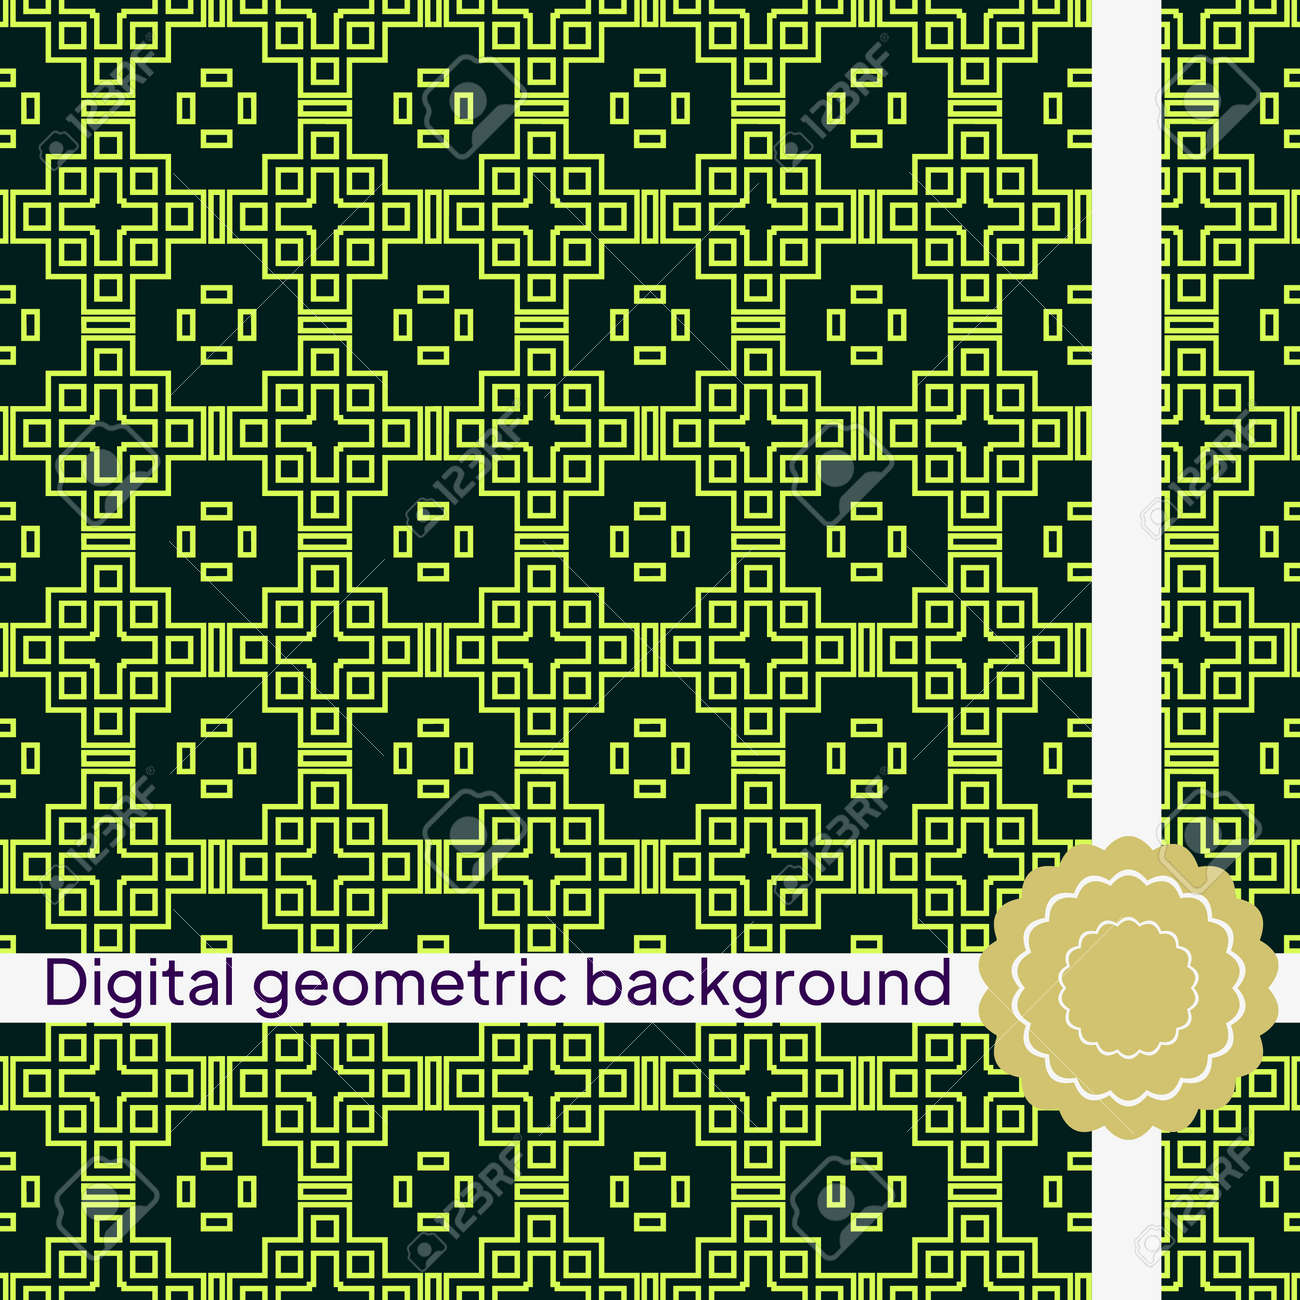 Seamless texture of different floral elements, triangles and other geometric shapes. For the design, printing, wallpaper. Vector illustration. - 167216131